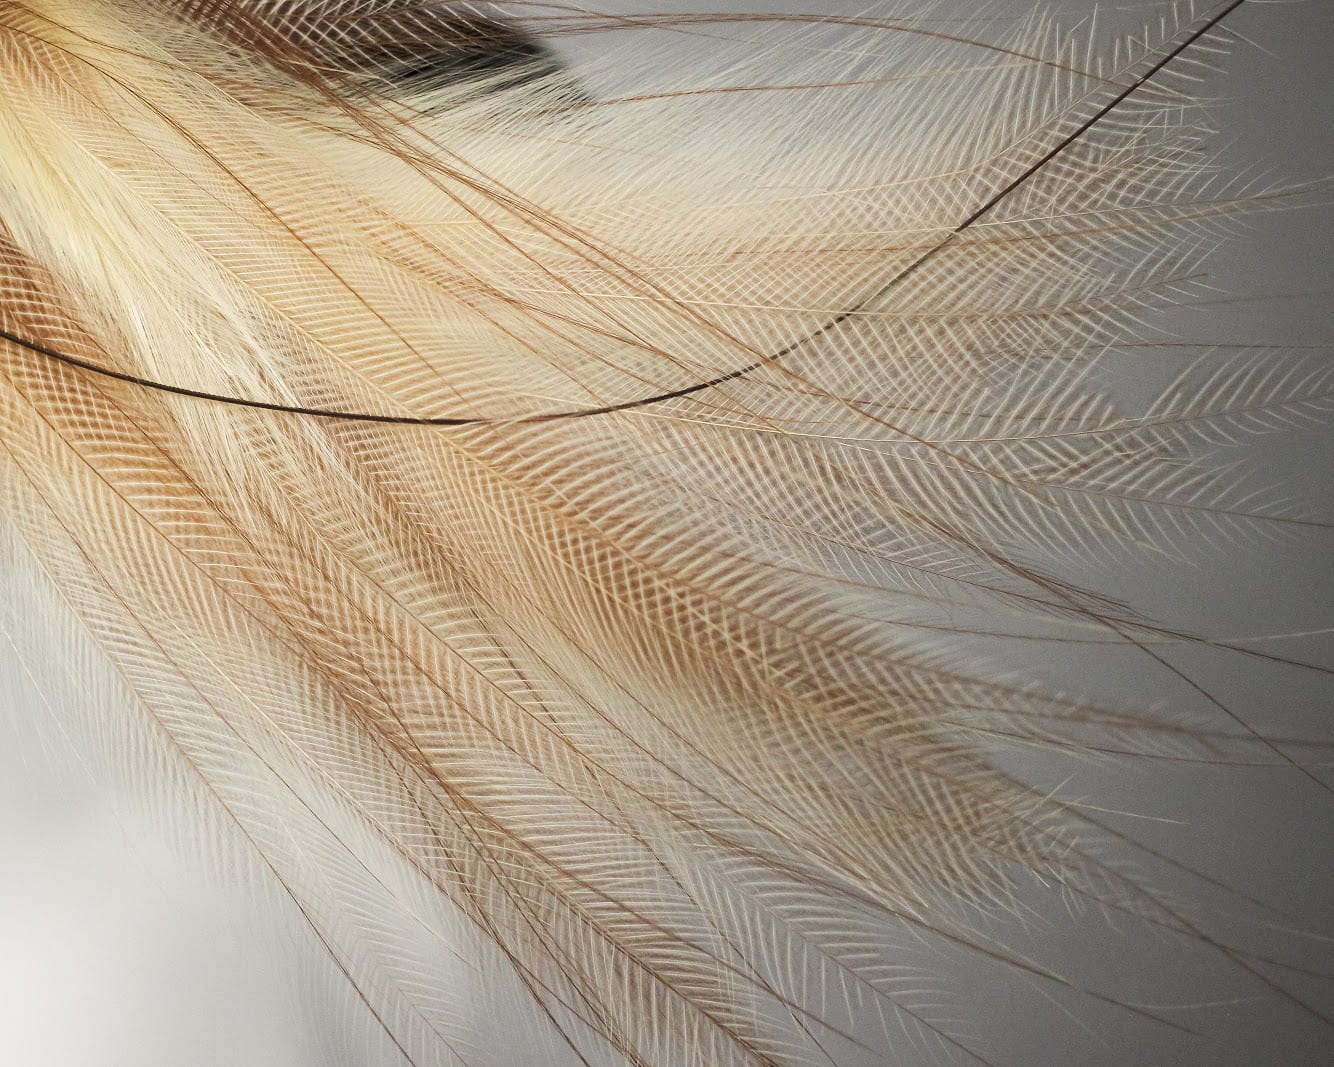 Flank feathers of a Greater Bird-of-Paradise (Paradisaea apoda), adorning a late 19th century hat. Photo by Grace Anderson.